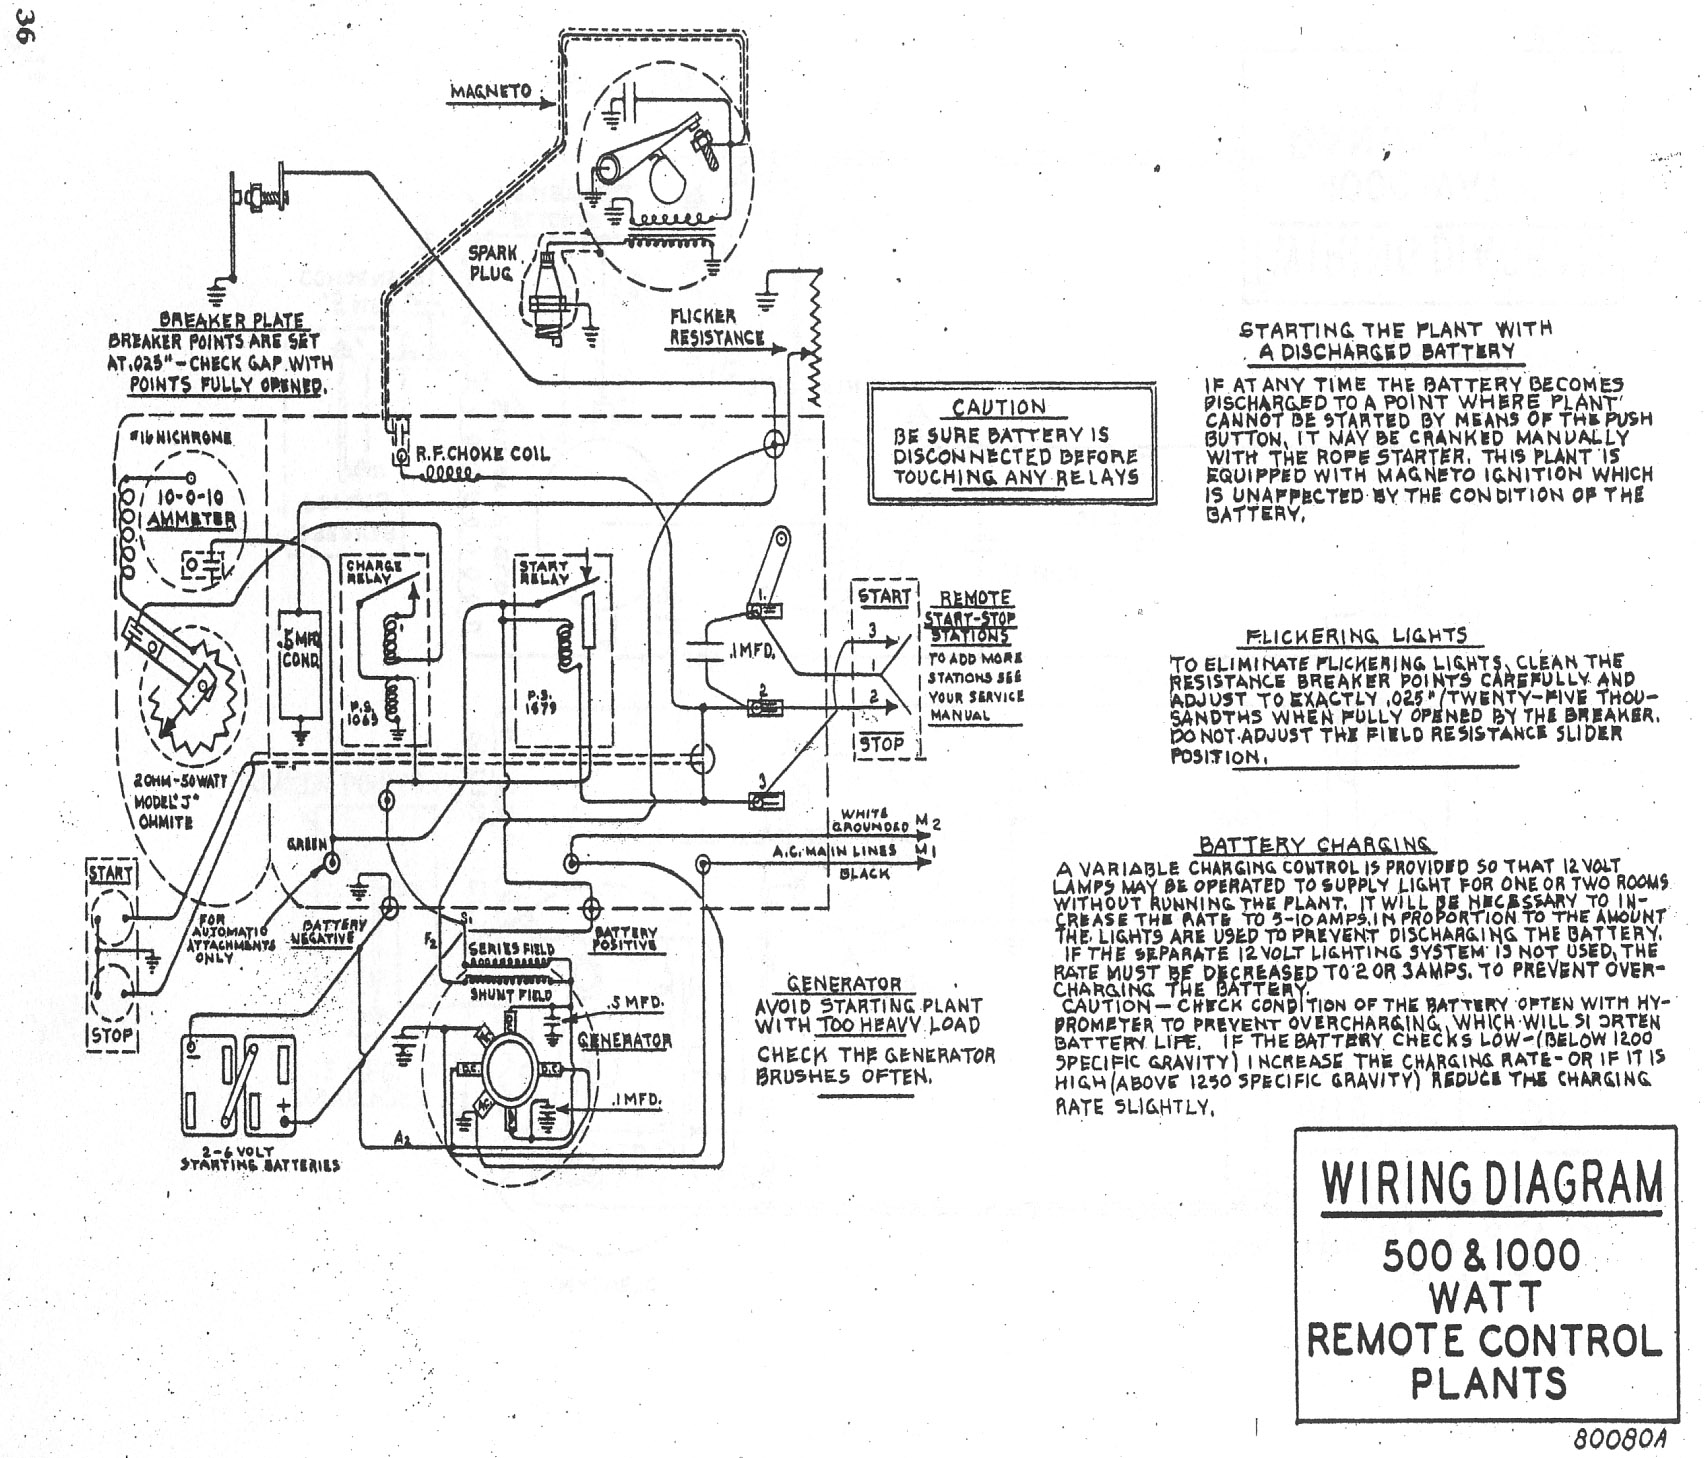 fairbanks morse 1 kw light plant manual rh runyard org Onan RV Generator 4500 For Rjc Onan Generators Wiring Diagrams